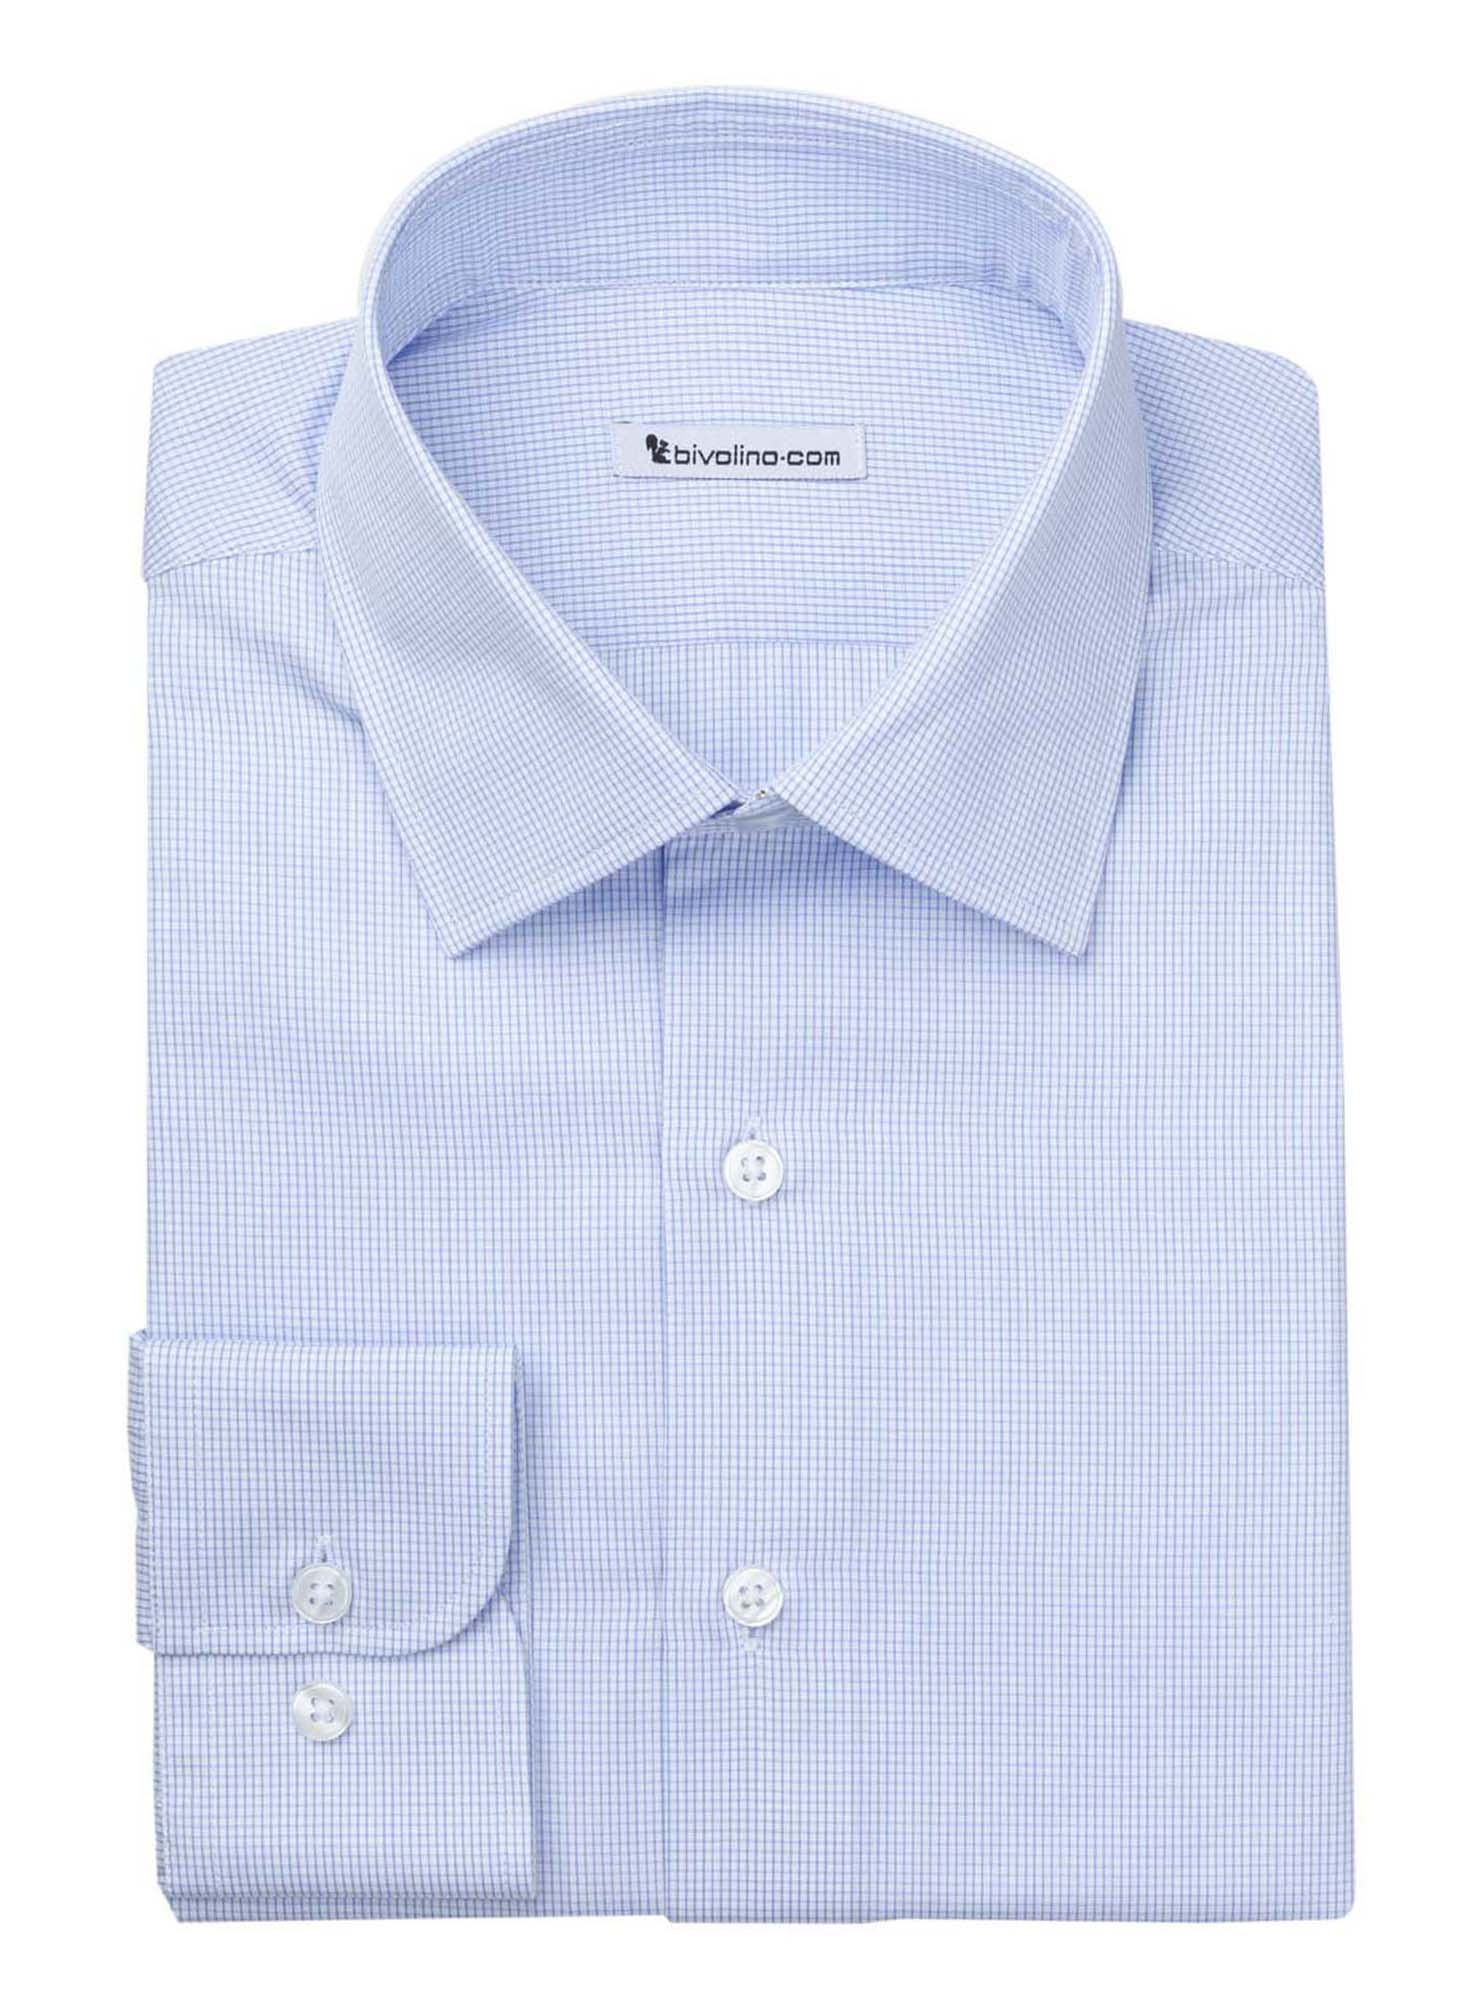 MARANO - Men's shirt supima cotton - DOCRA 7